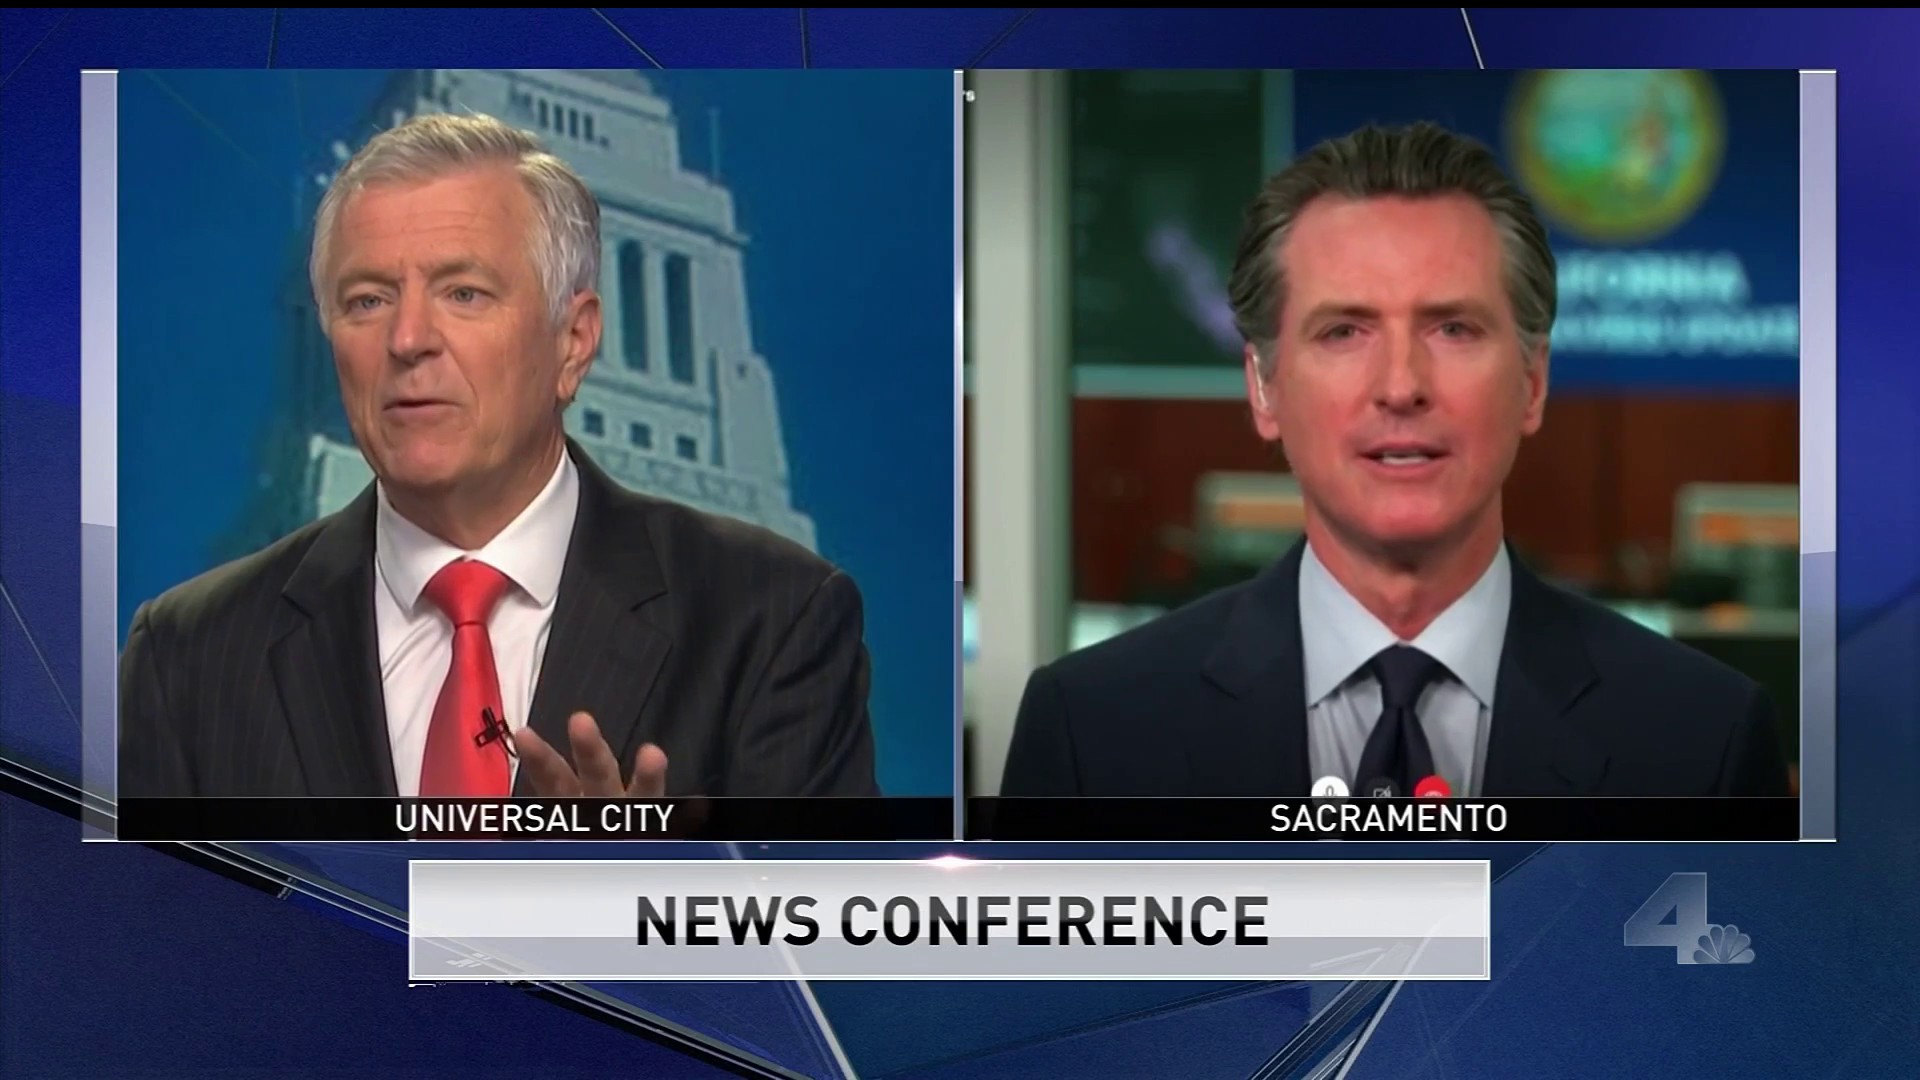 NewsConference